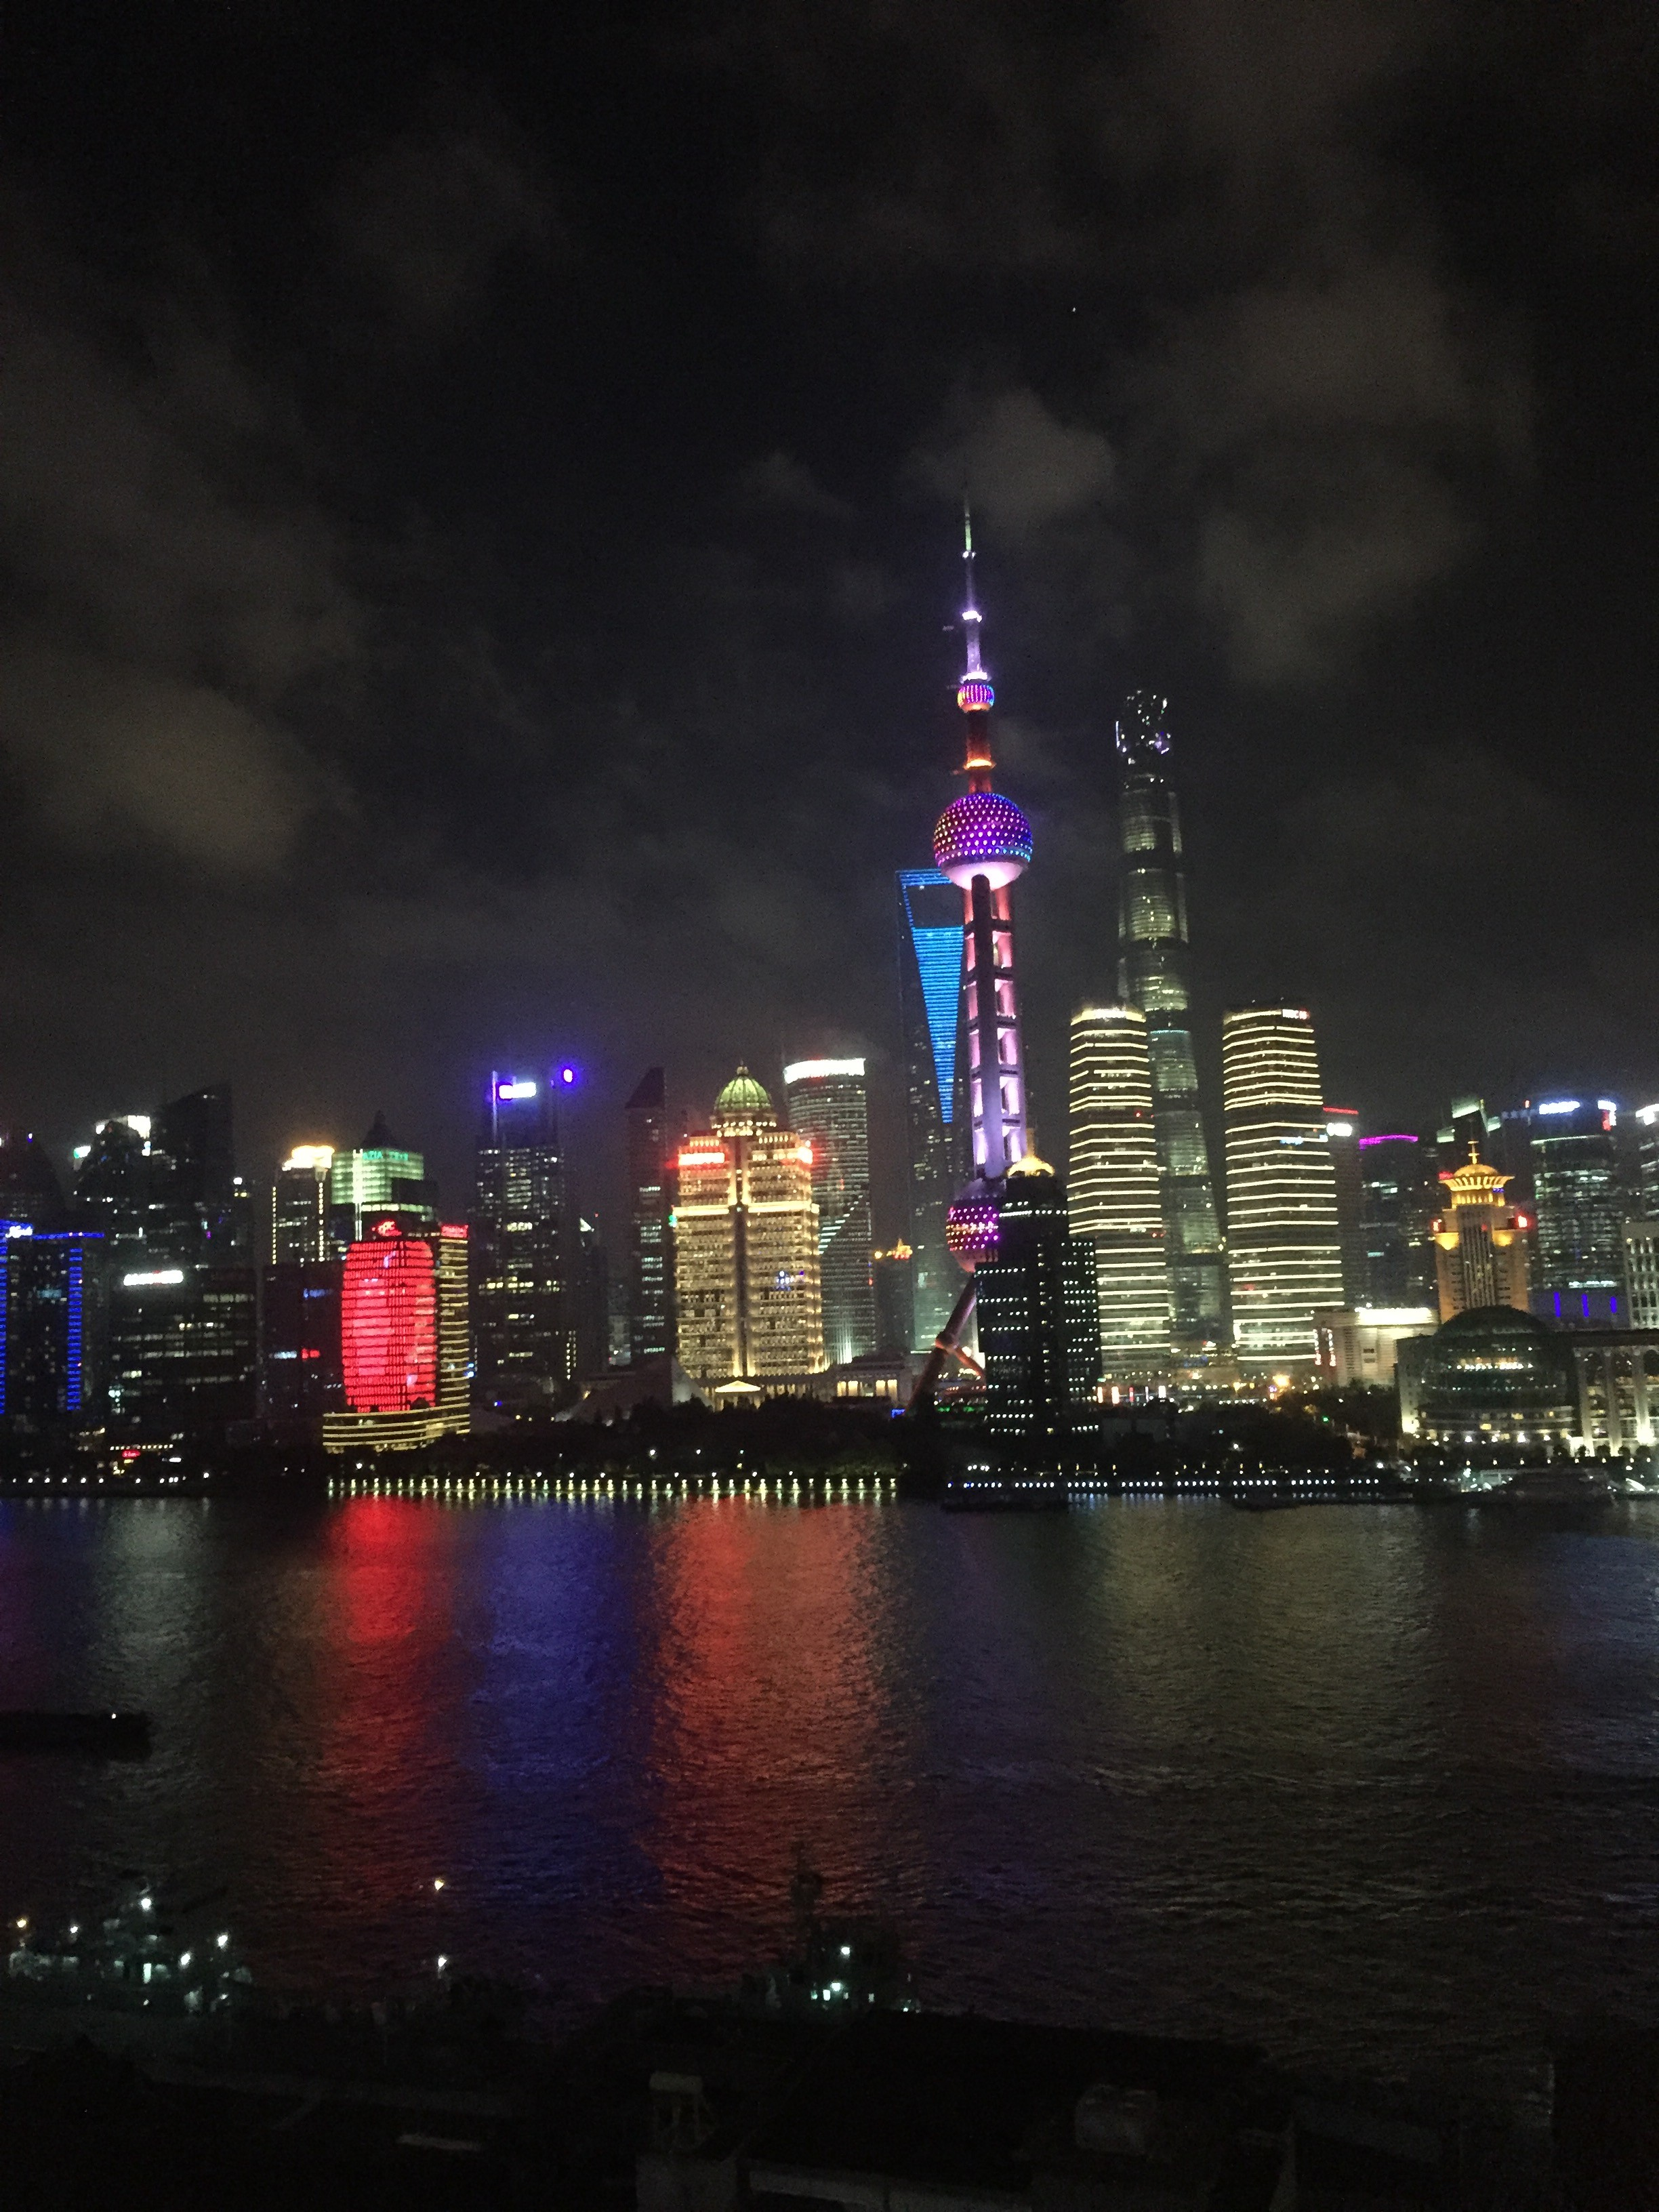 the dazzling nighttime cityscape at Shanghai on The Bund